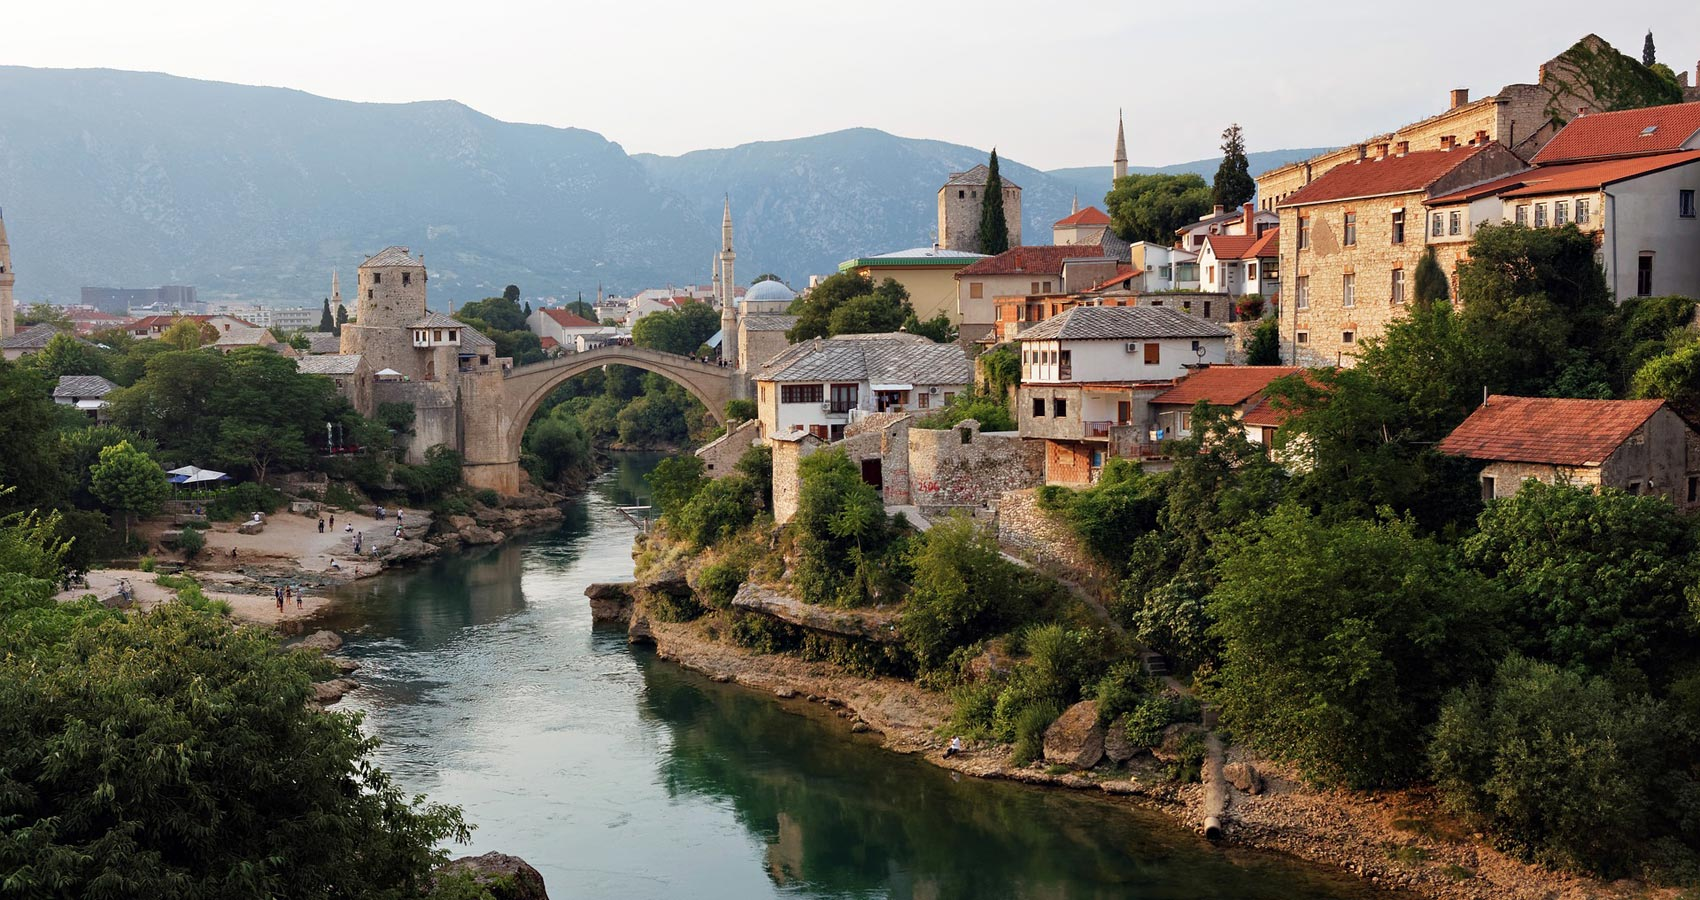 Bosnia, Travel Notes and Other Poems, poetry by Paolo Maria Rocco at Spillwords.com